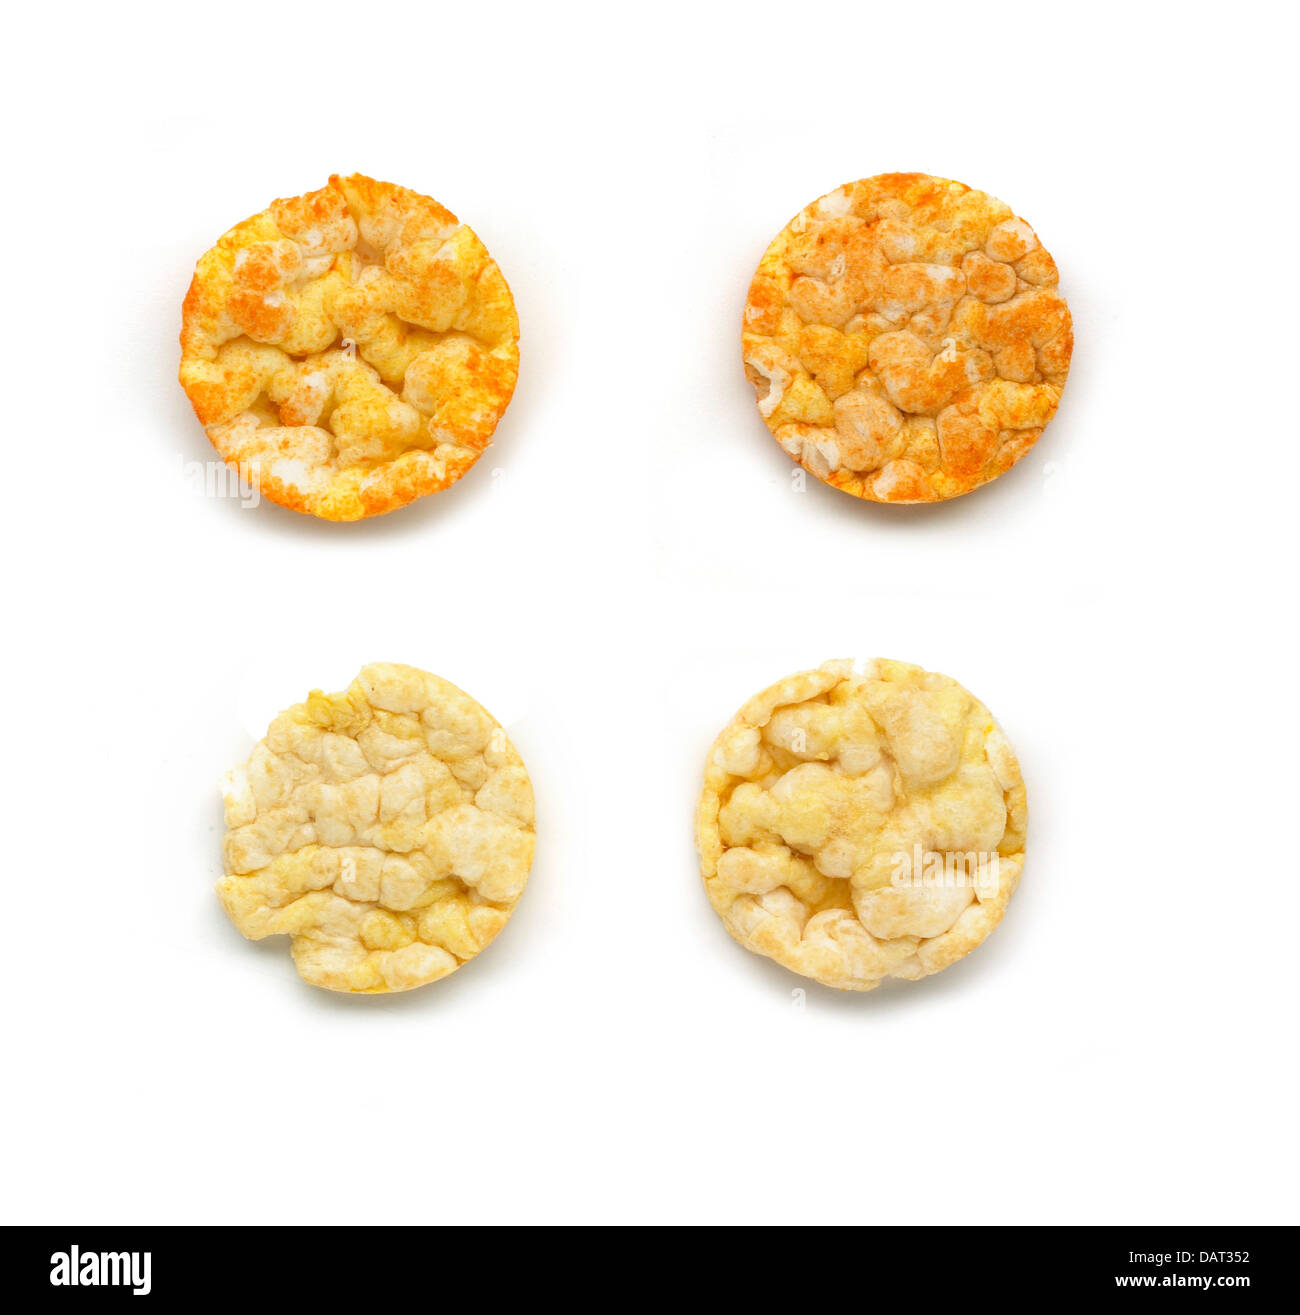 rice crackers cut out onto a white background - Stock Image